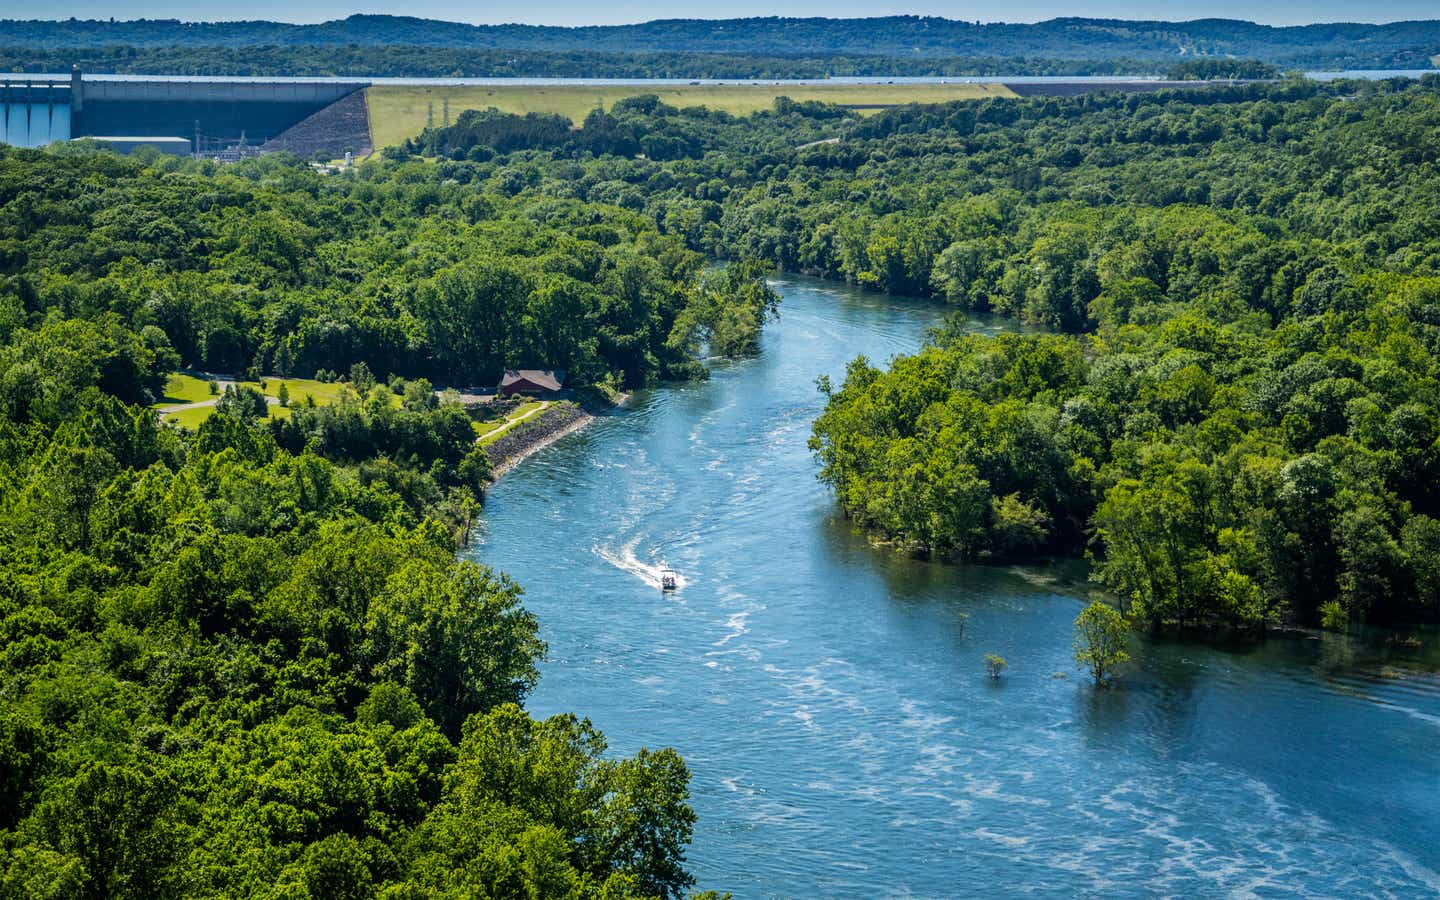 Aerial view of river in Branson, Missouri near Ozark Mountain Resort.